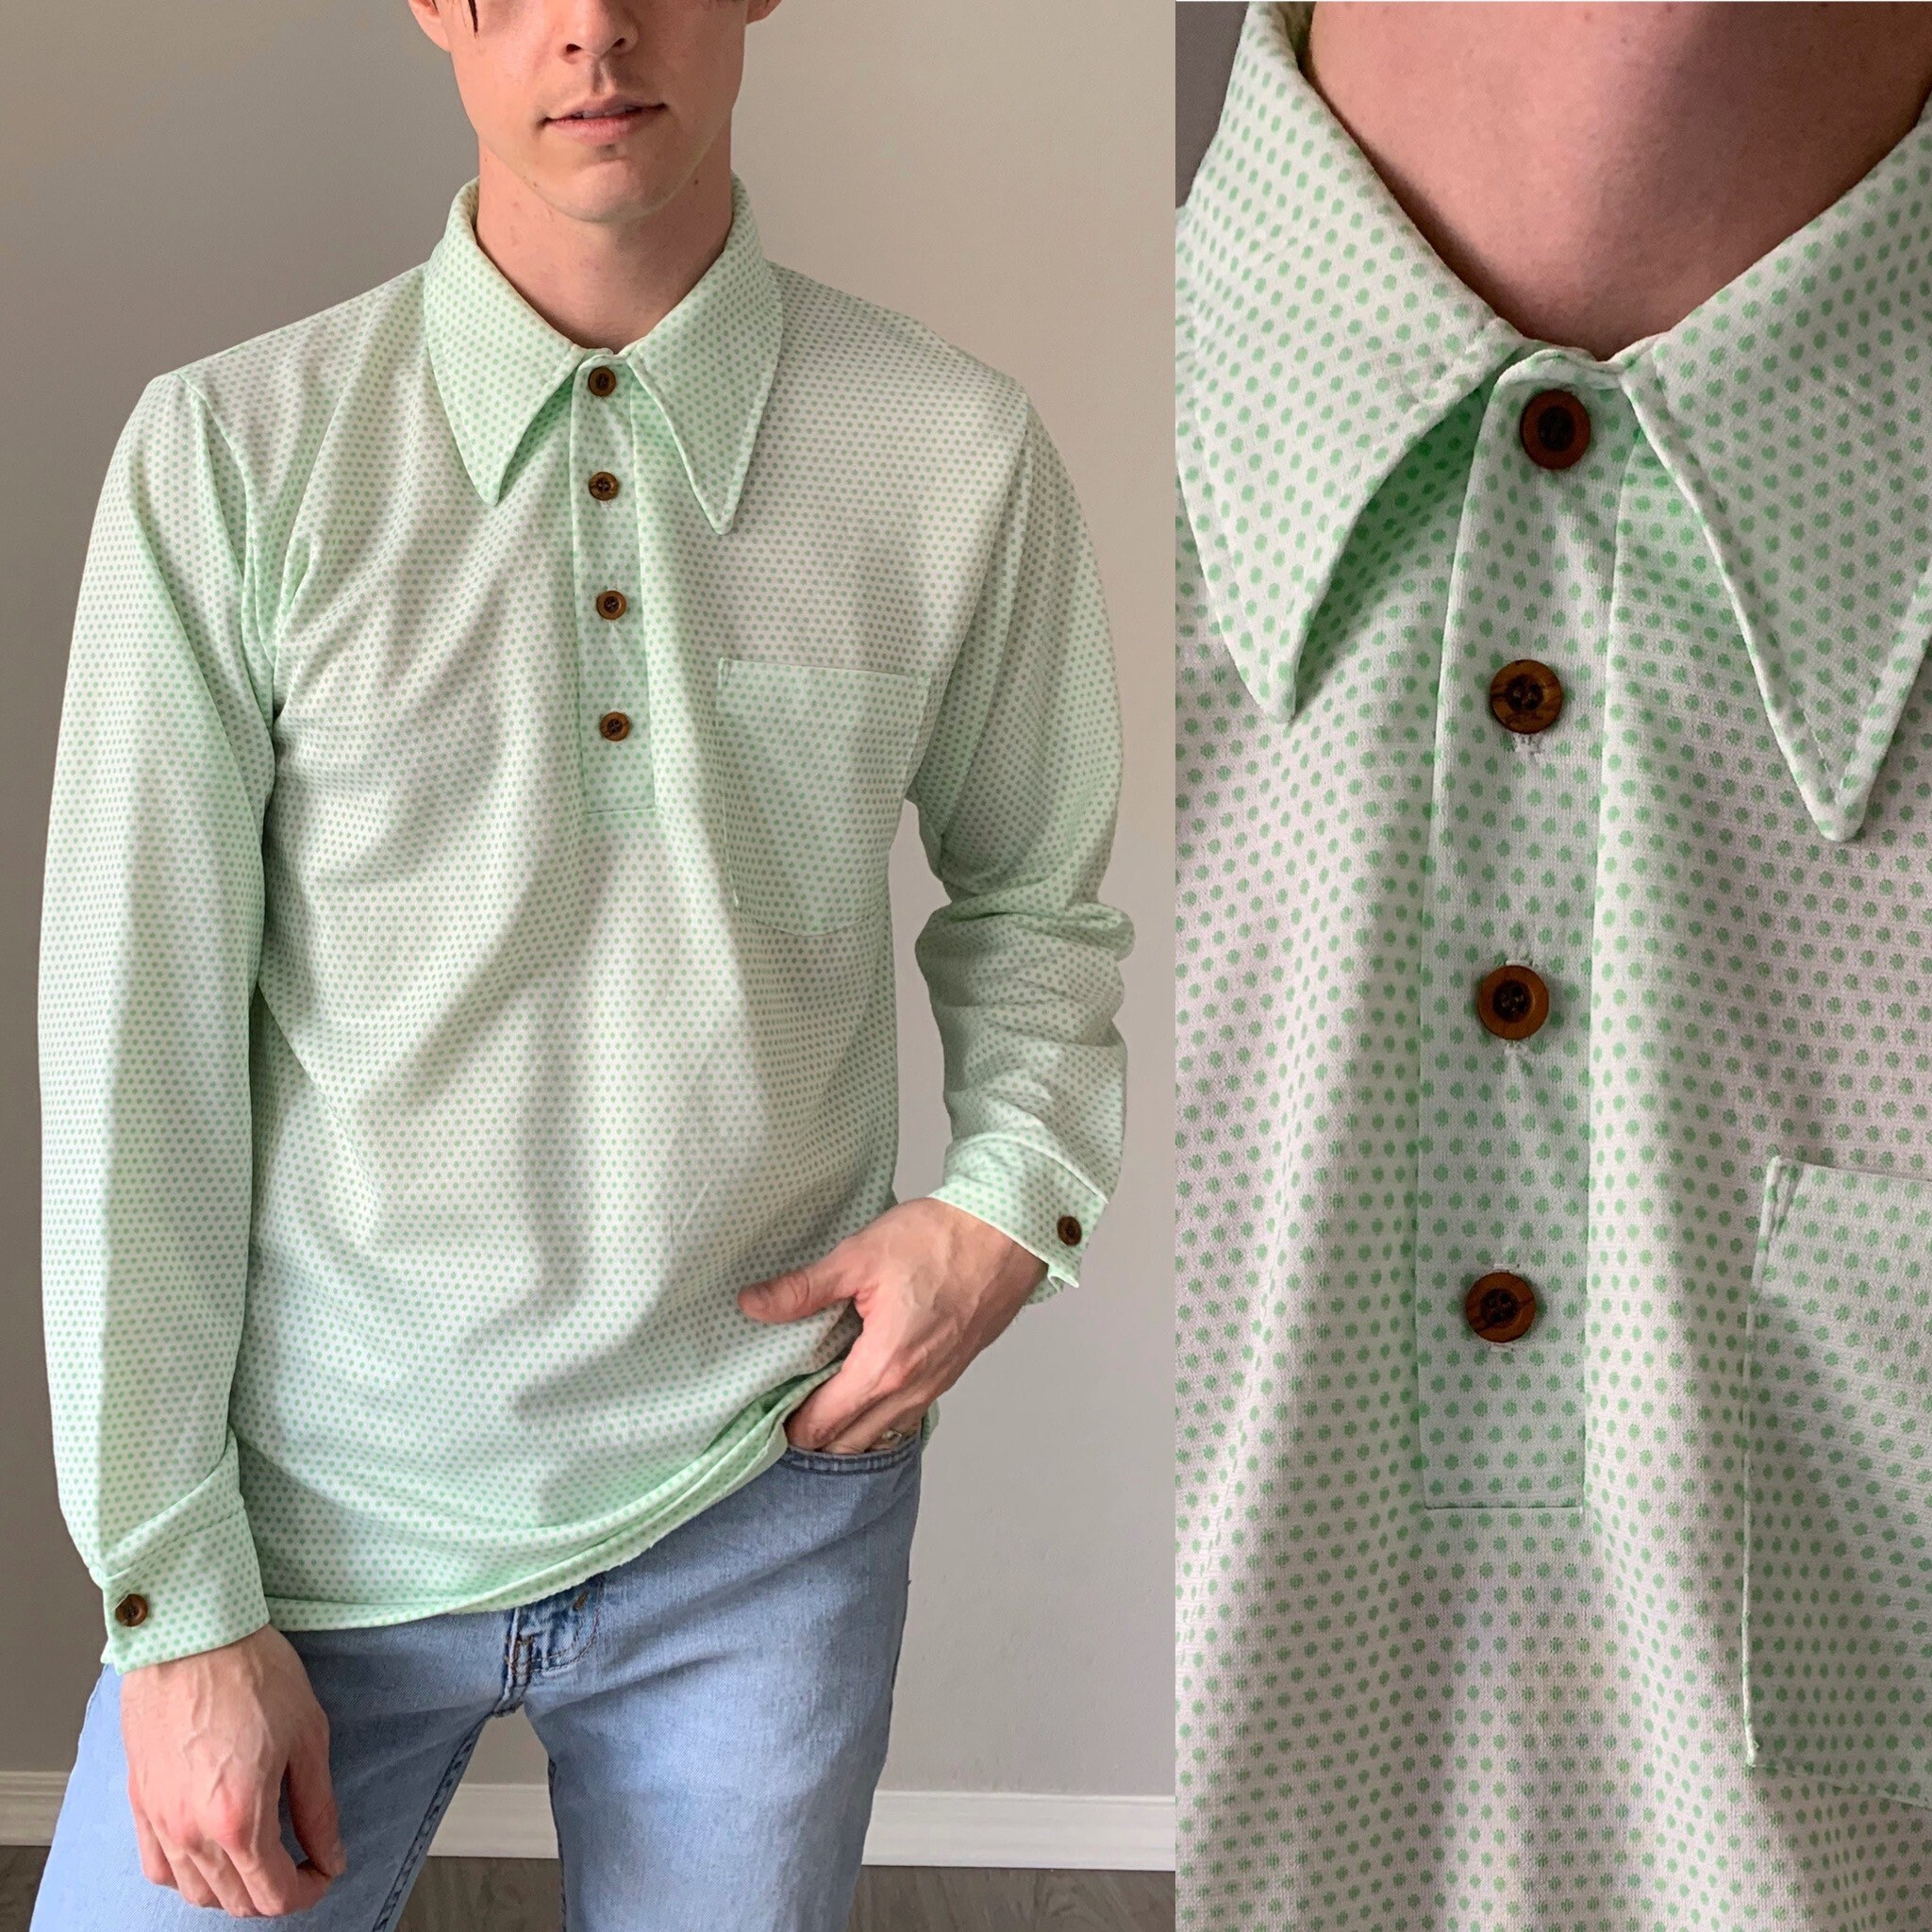 1970s Mens Shirt Styles – Vintage 70s Shirts for Guys Vintage 1970S ShirtHenley Button Polka Dot Long Sleeve 70S Mens Pointed Collar Mod Polo Size Medium Large $0.00 AT vintagedancer.com